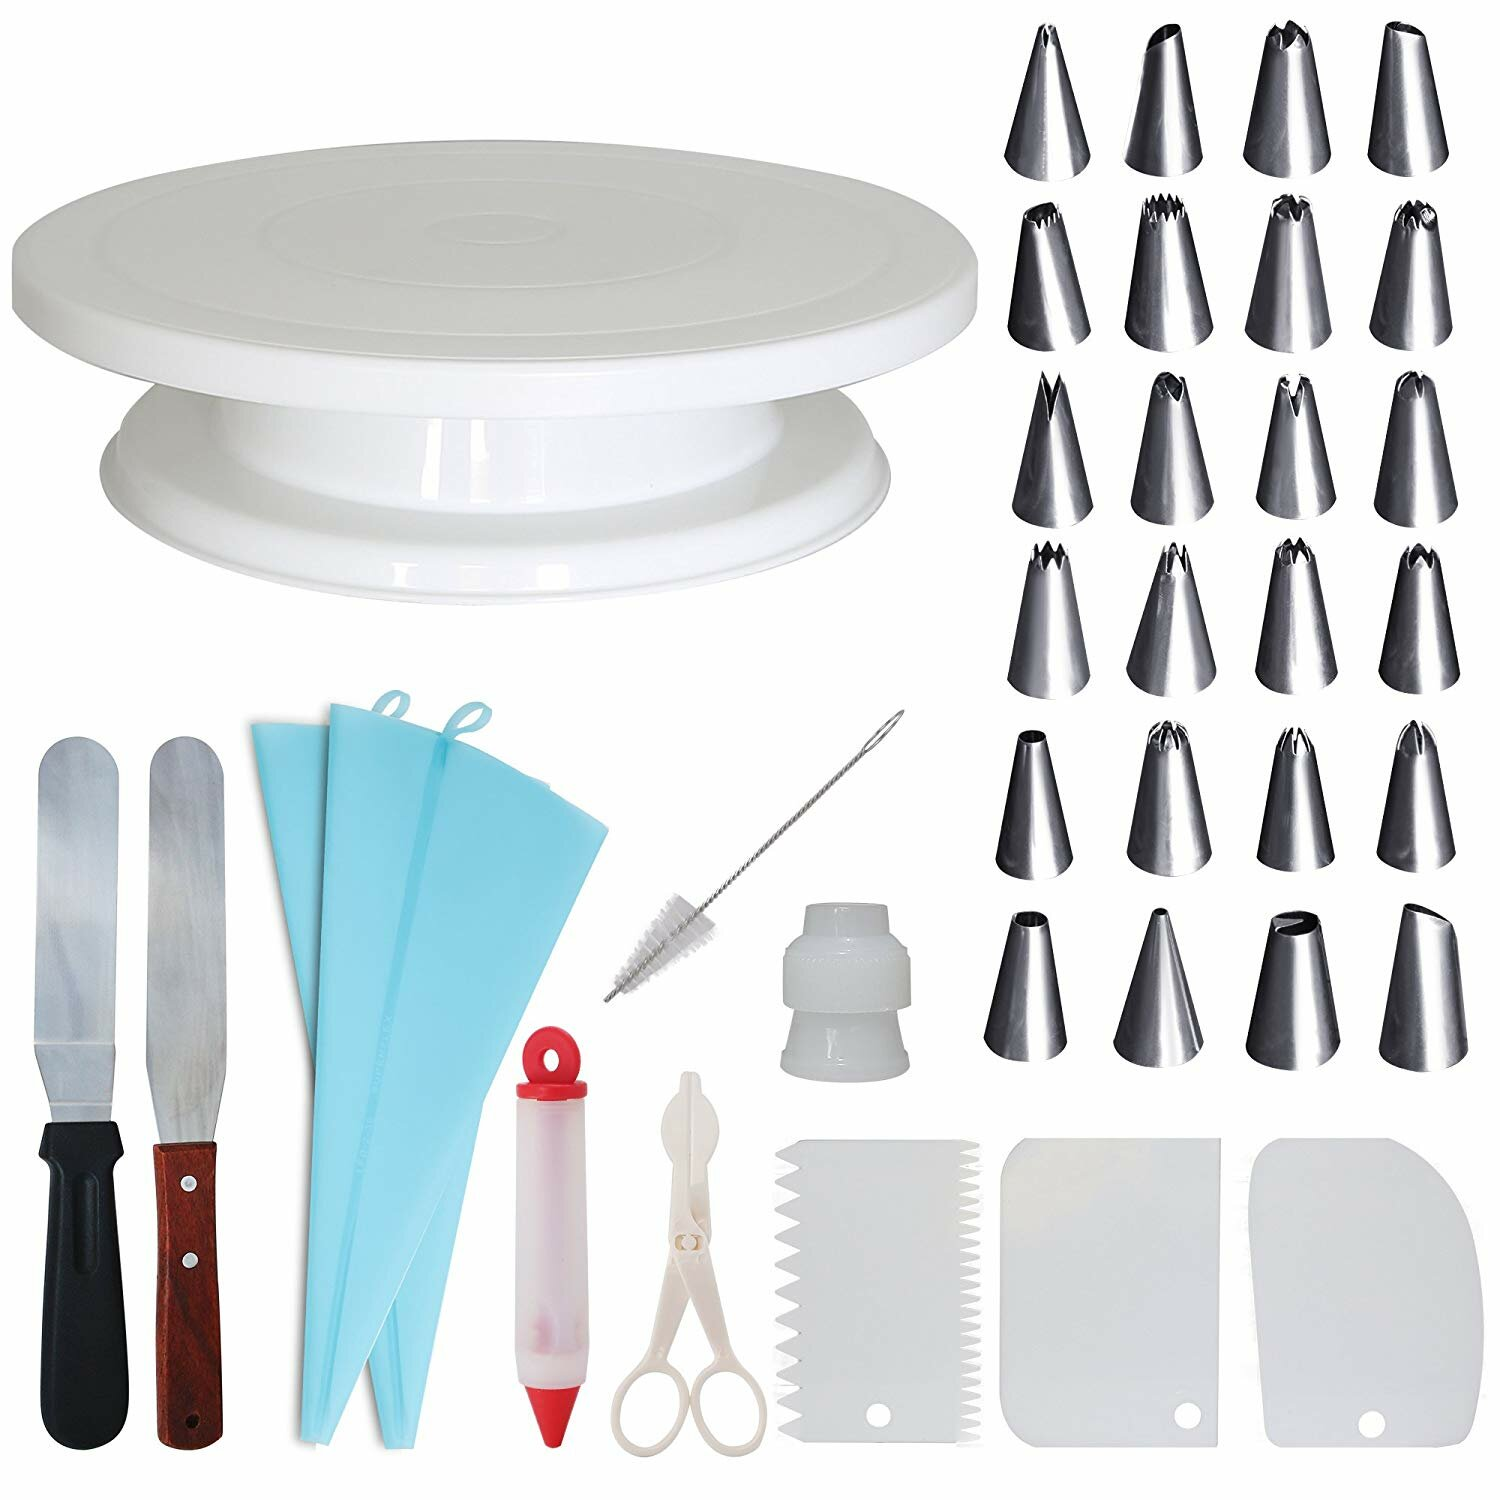 Homeries 36 Piece Cake Decorating Set Reviews Wayfair